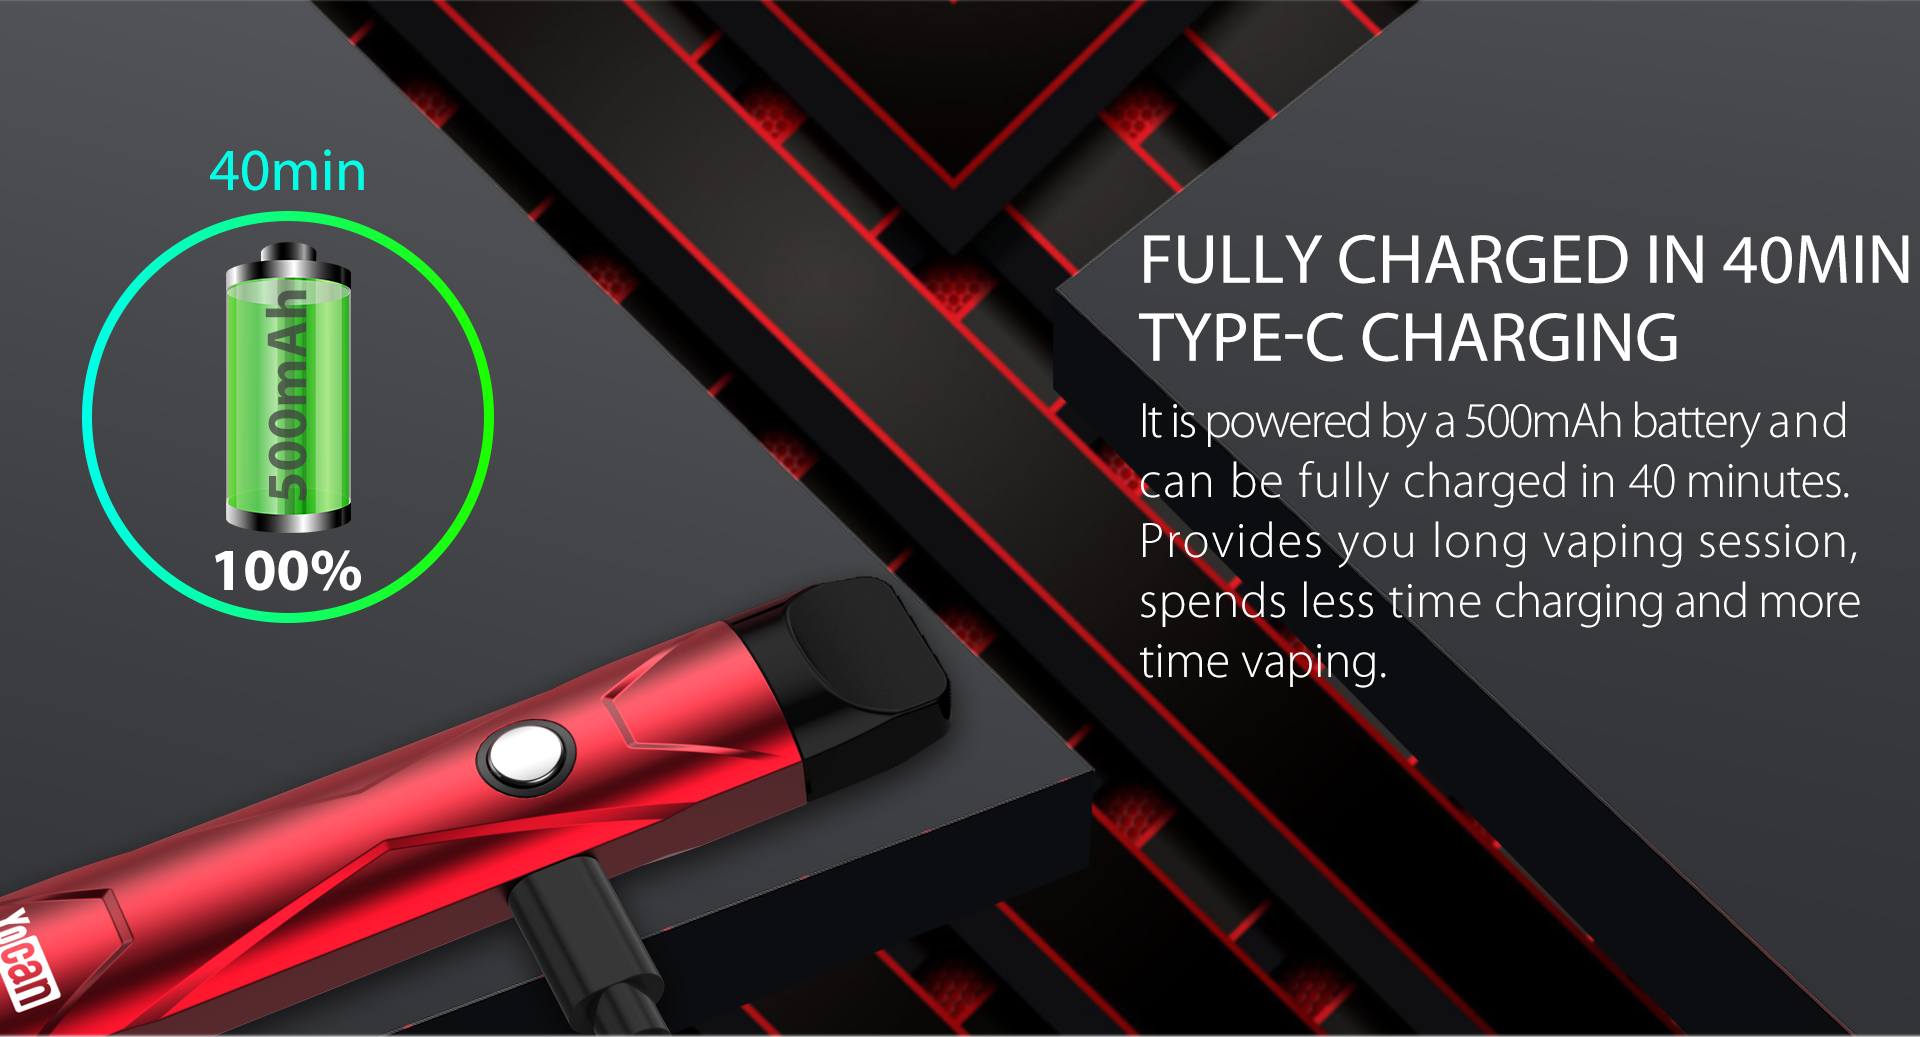 Yocan X Pod System feature Fully Charged in 40Min- Type-C Charging